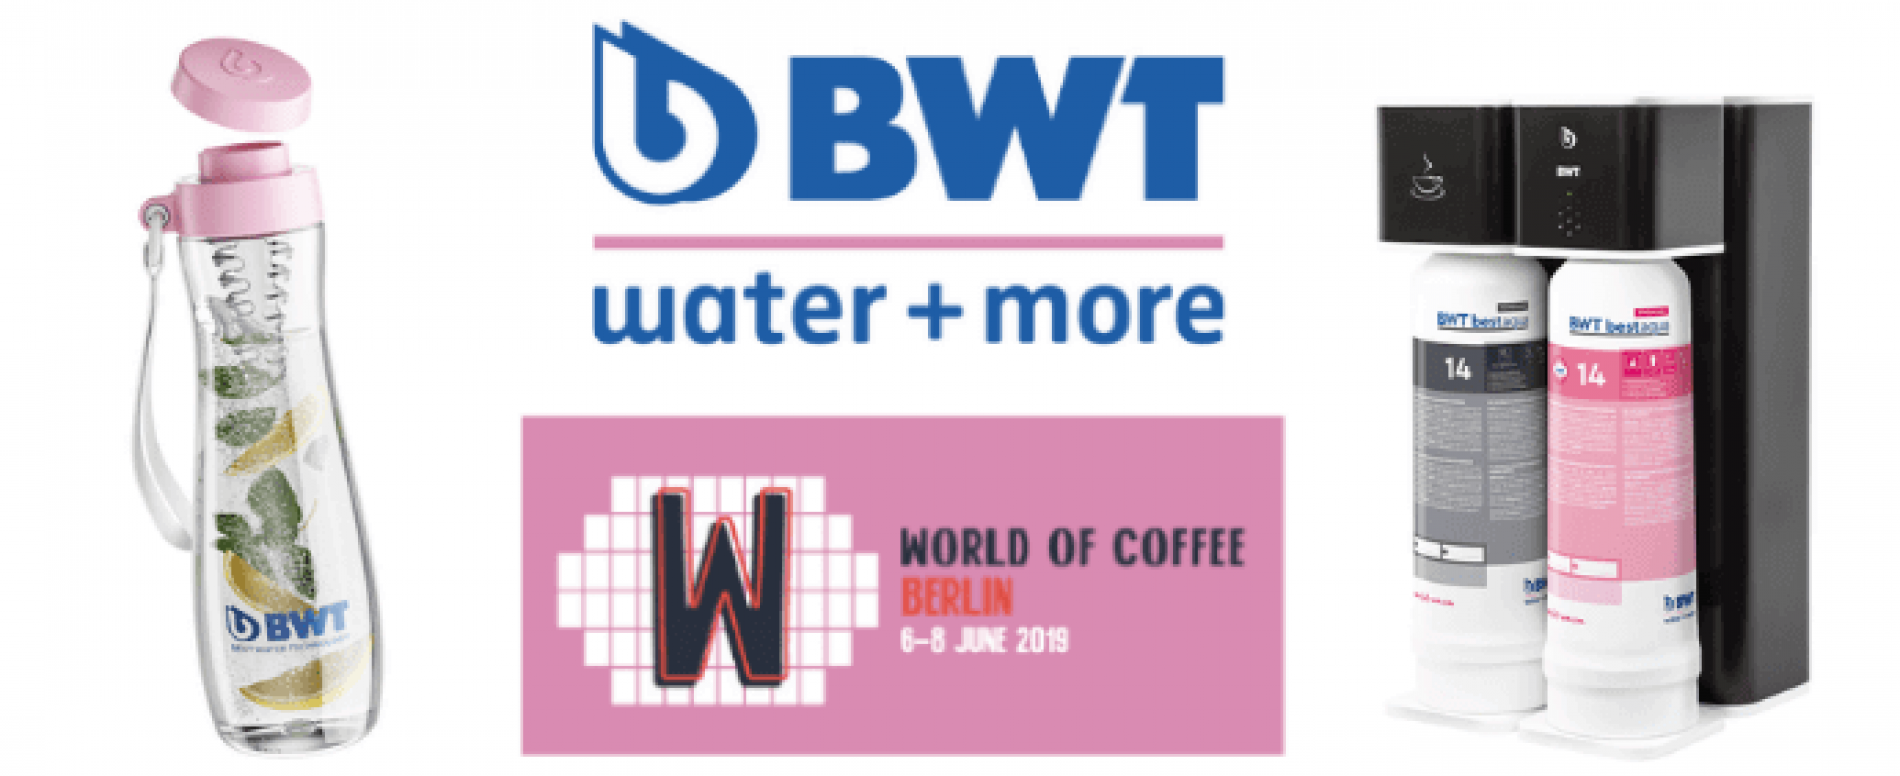 BWT water+more Event Host Sponsor a World of Coffee 2019